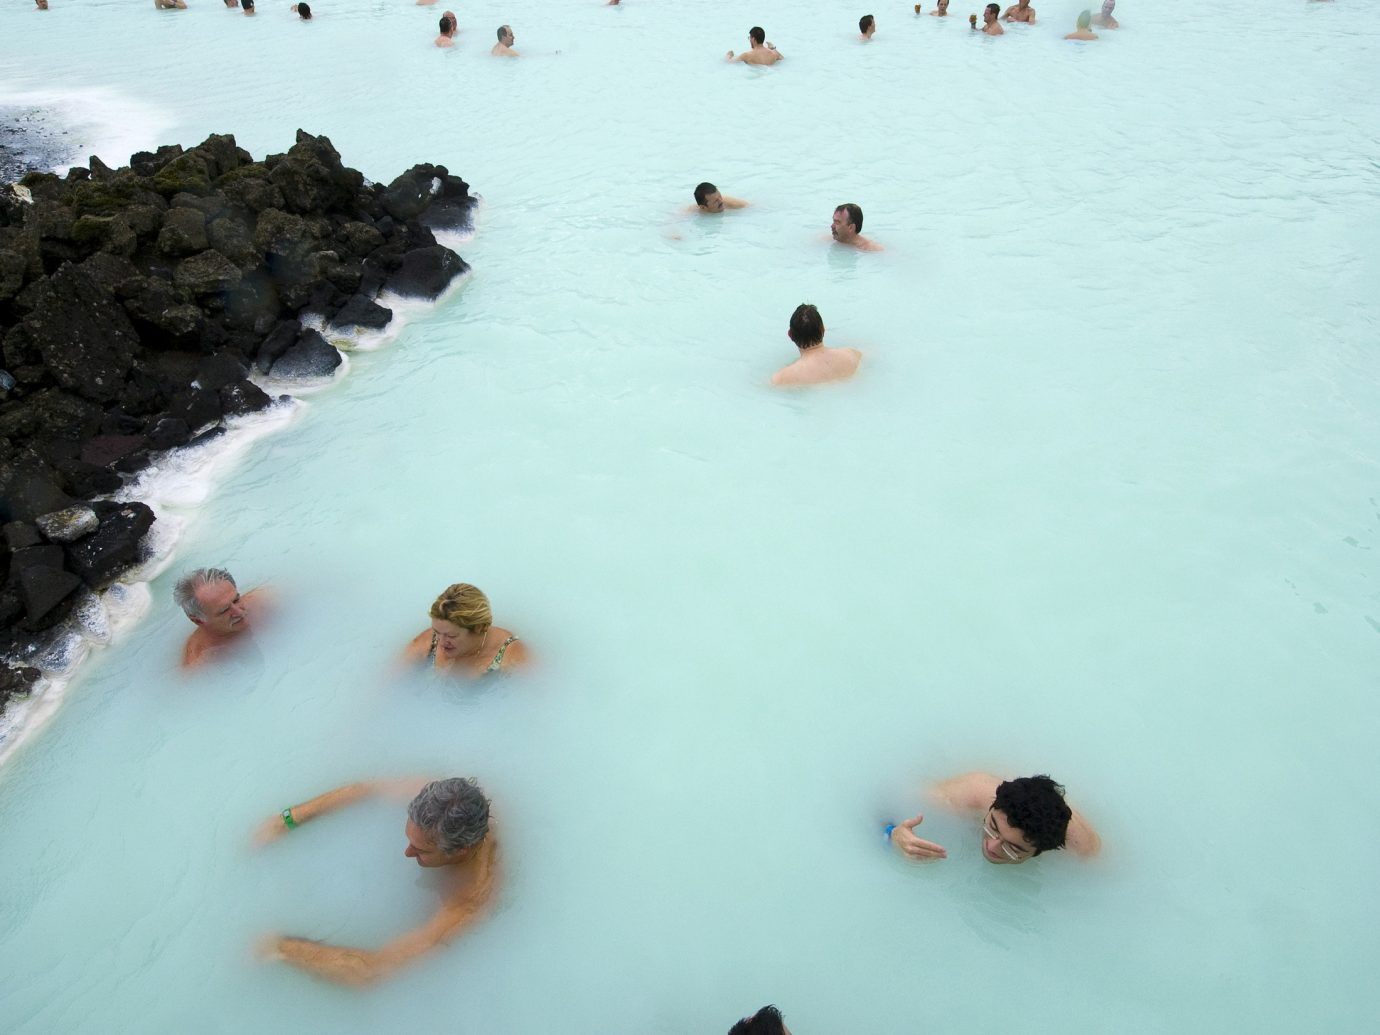 Hotels Iceland Trip Ideas sky water Beach body of water Winter weather snow reflection Sea sand season Nature material